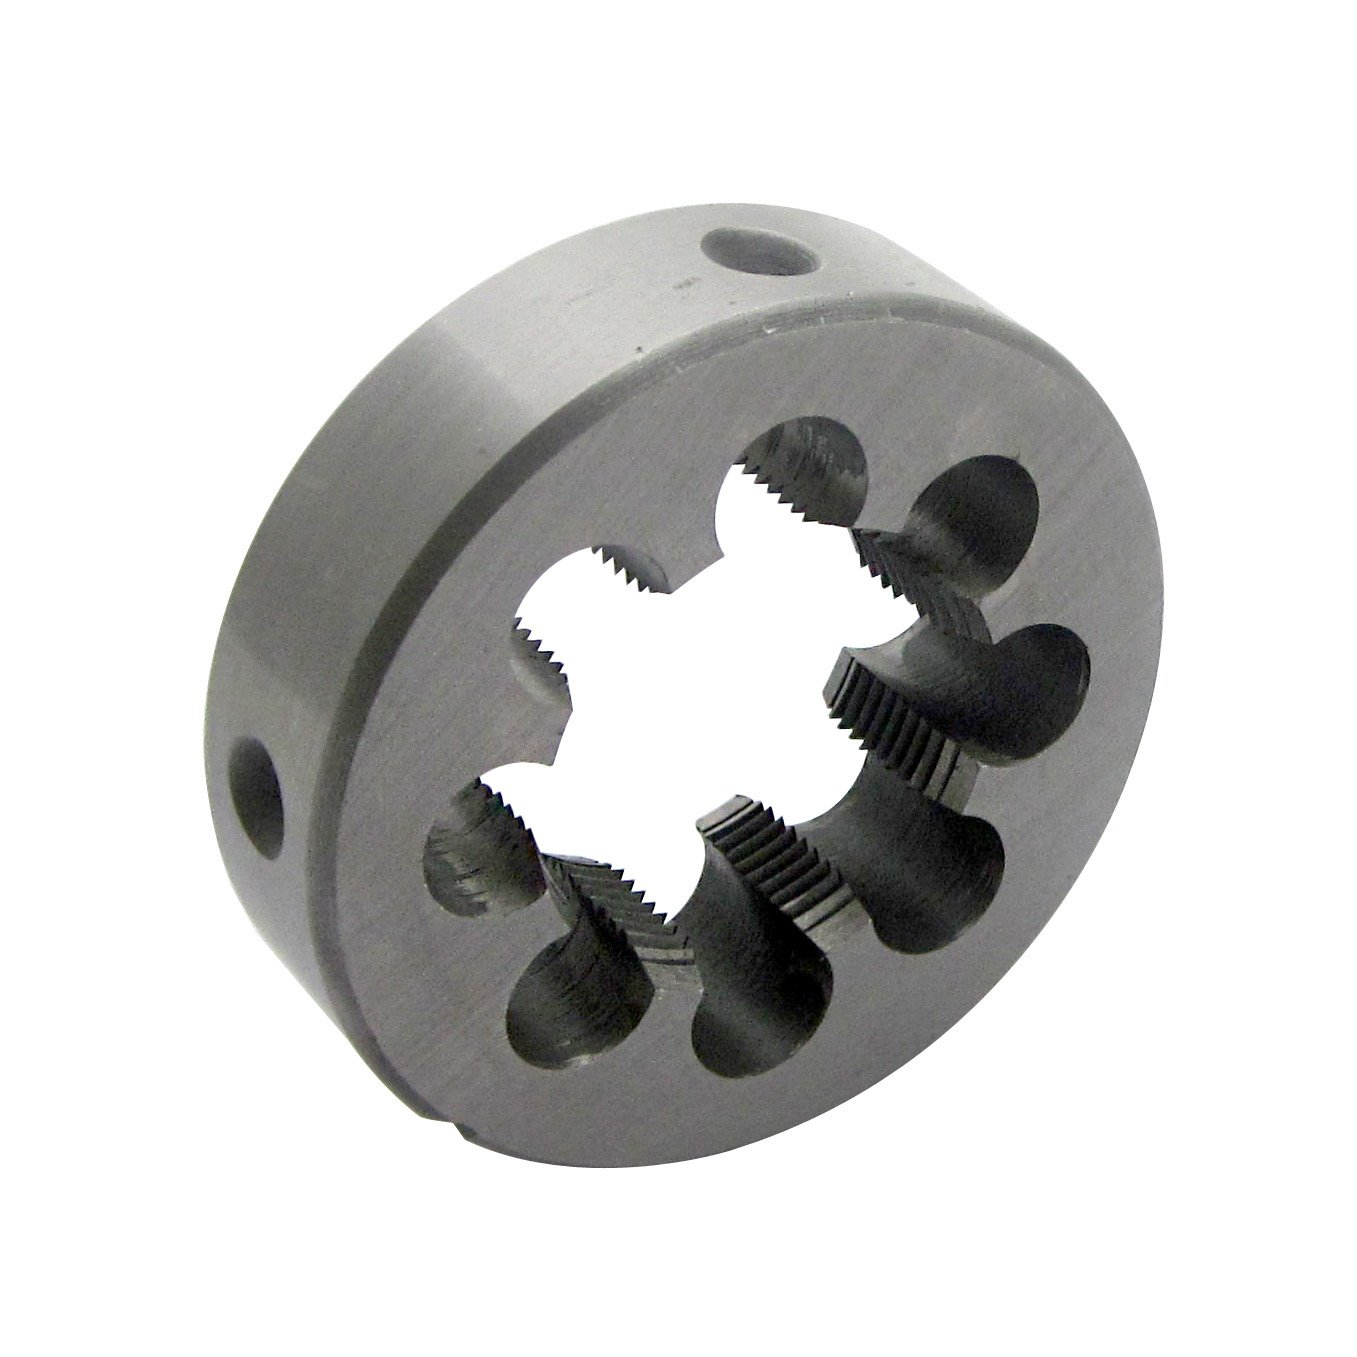 56mm X 2 Metric Right Hand Thread Die M56 X 2.0mm Pitch